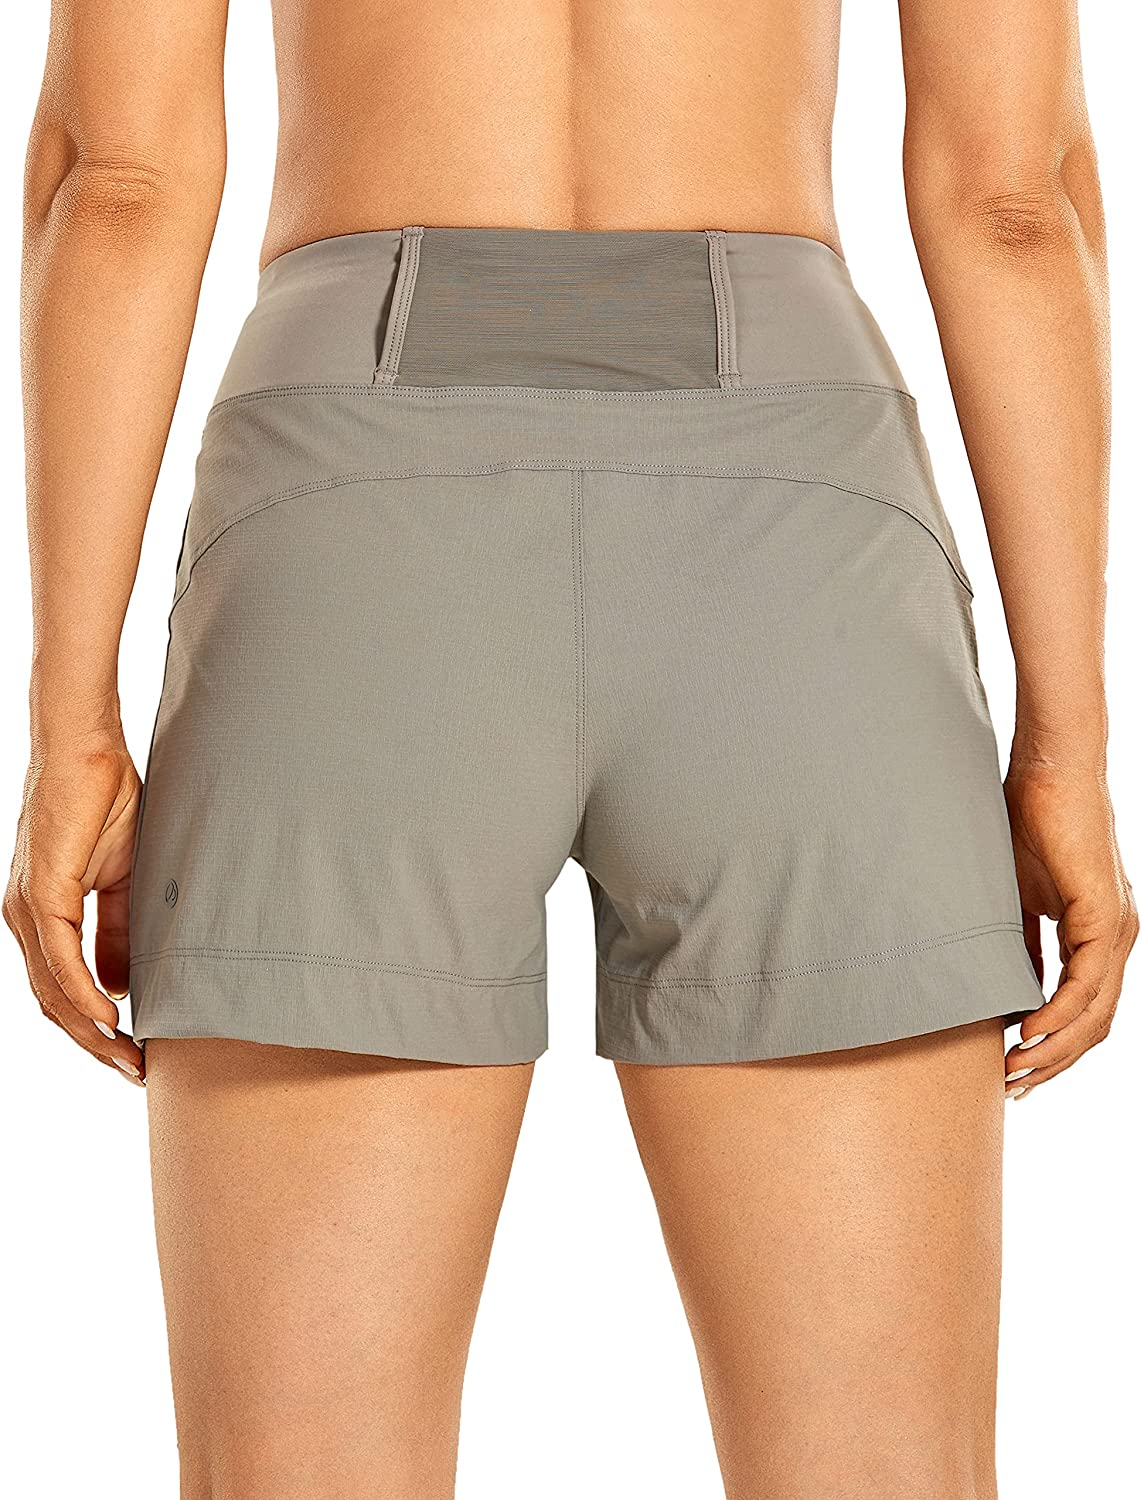 CRZ Super beauty product restock quality top! YOGA Women's security Lightweight Hiking Outdoor Shorts Travel Quick-